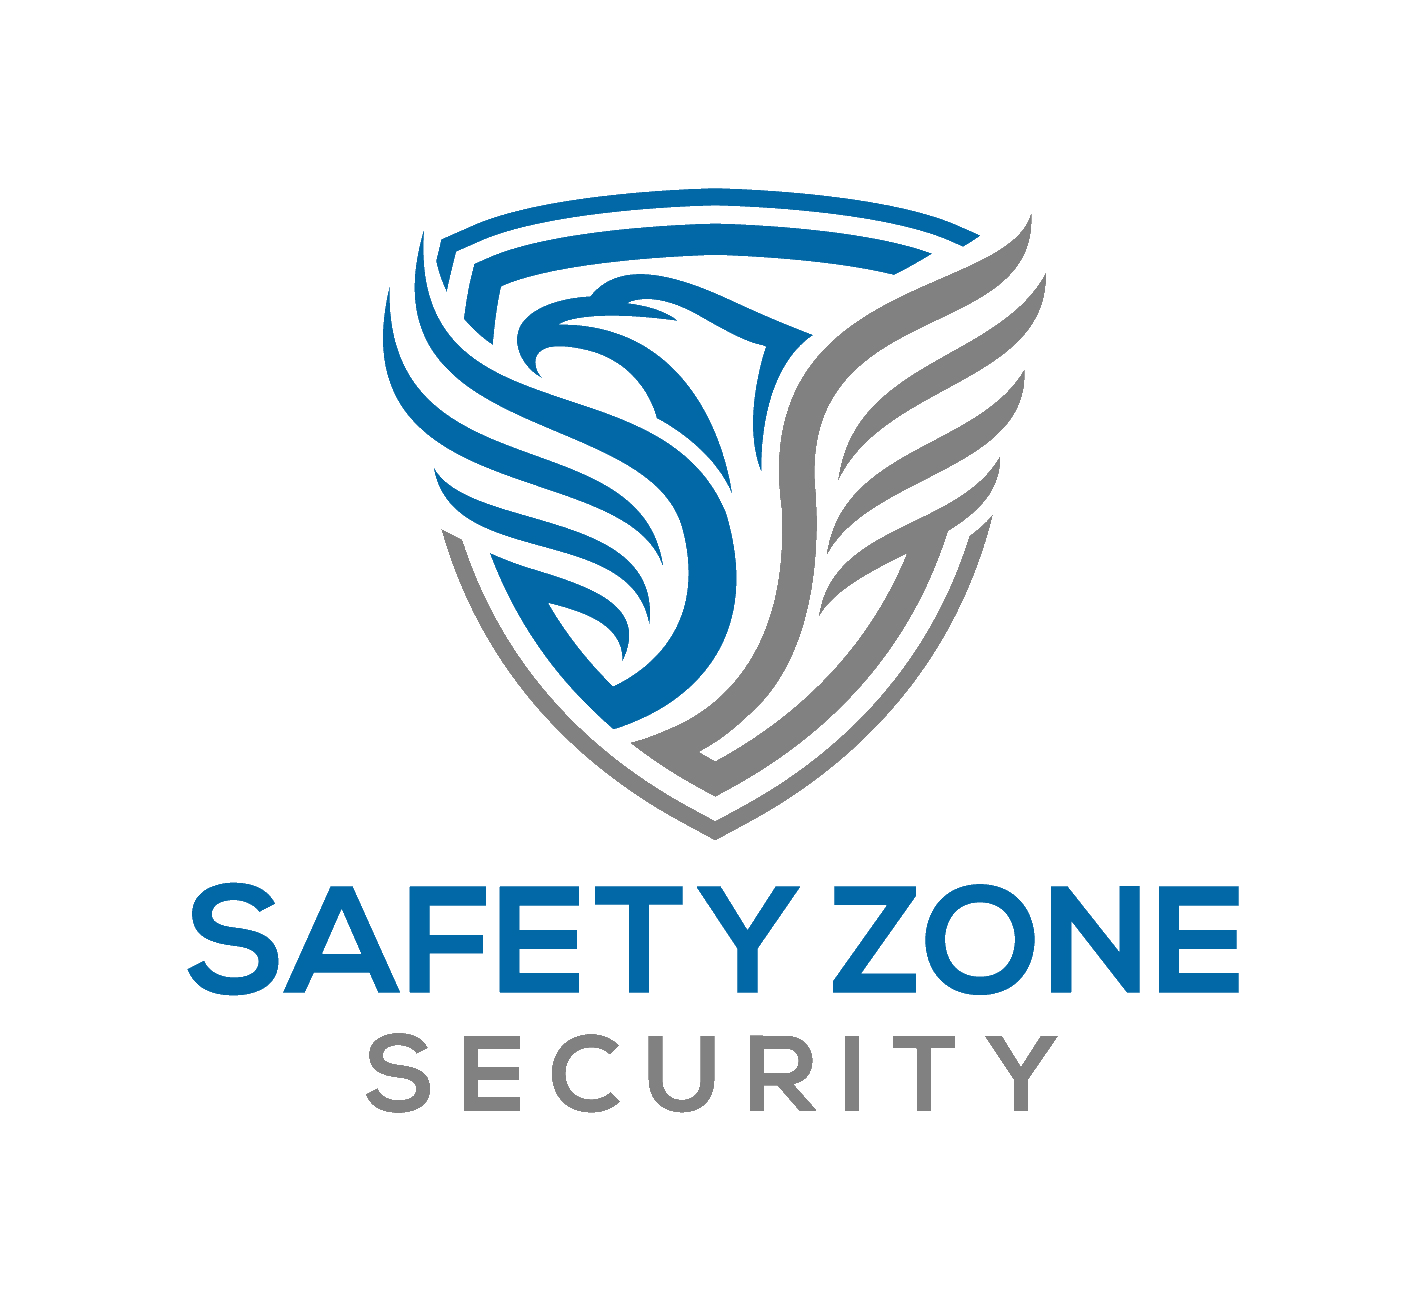 Safety Zone Security